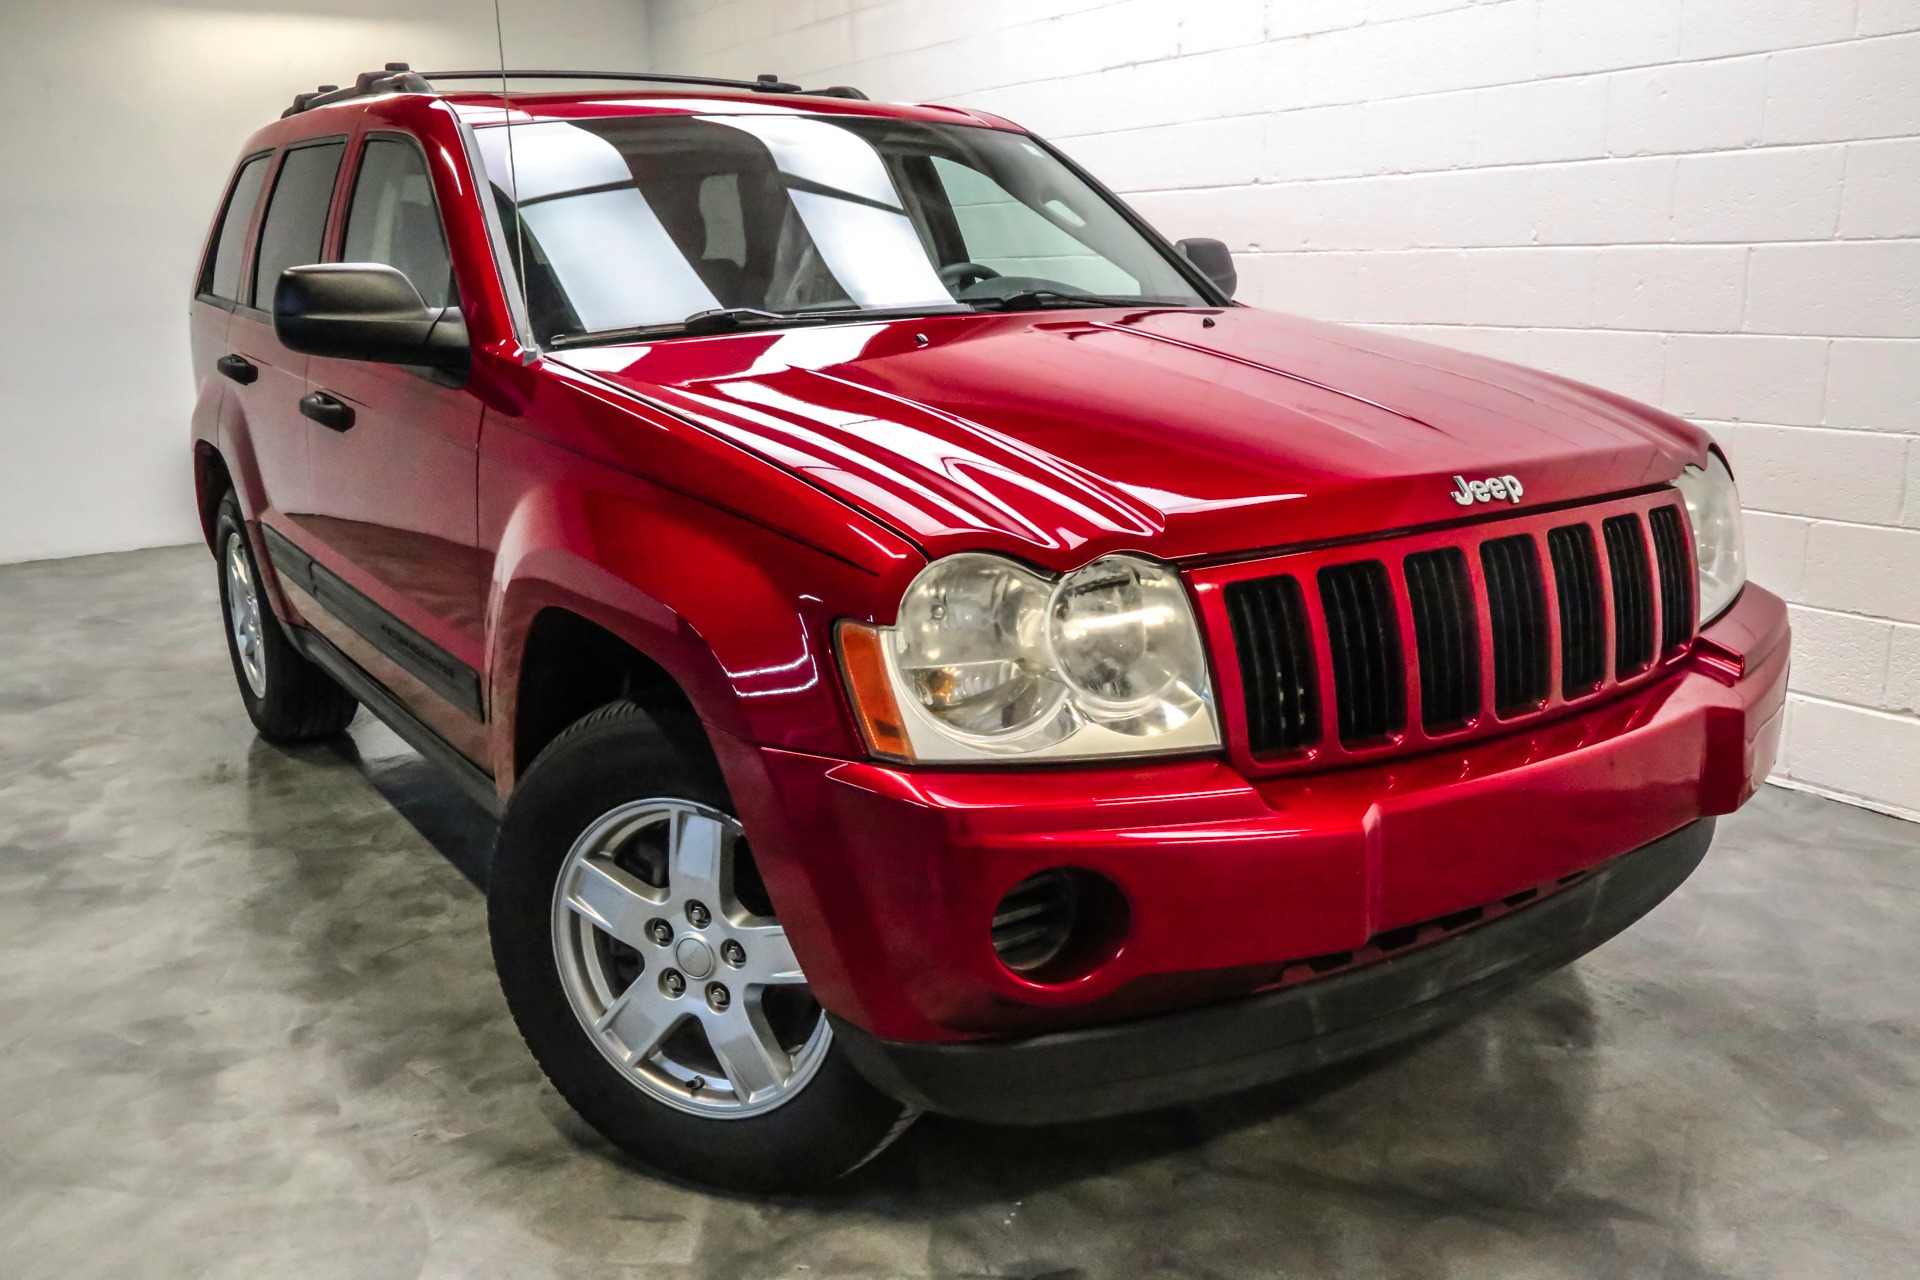 Used 2006 Jeep Grand Cherokee Laredo For Sale 6 991 Inetwork Auto Group Stock T113053